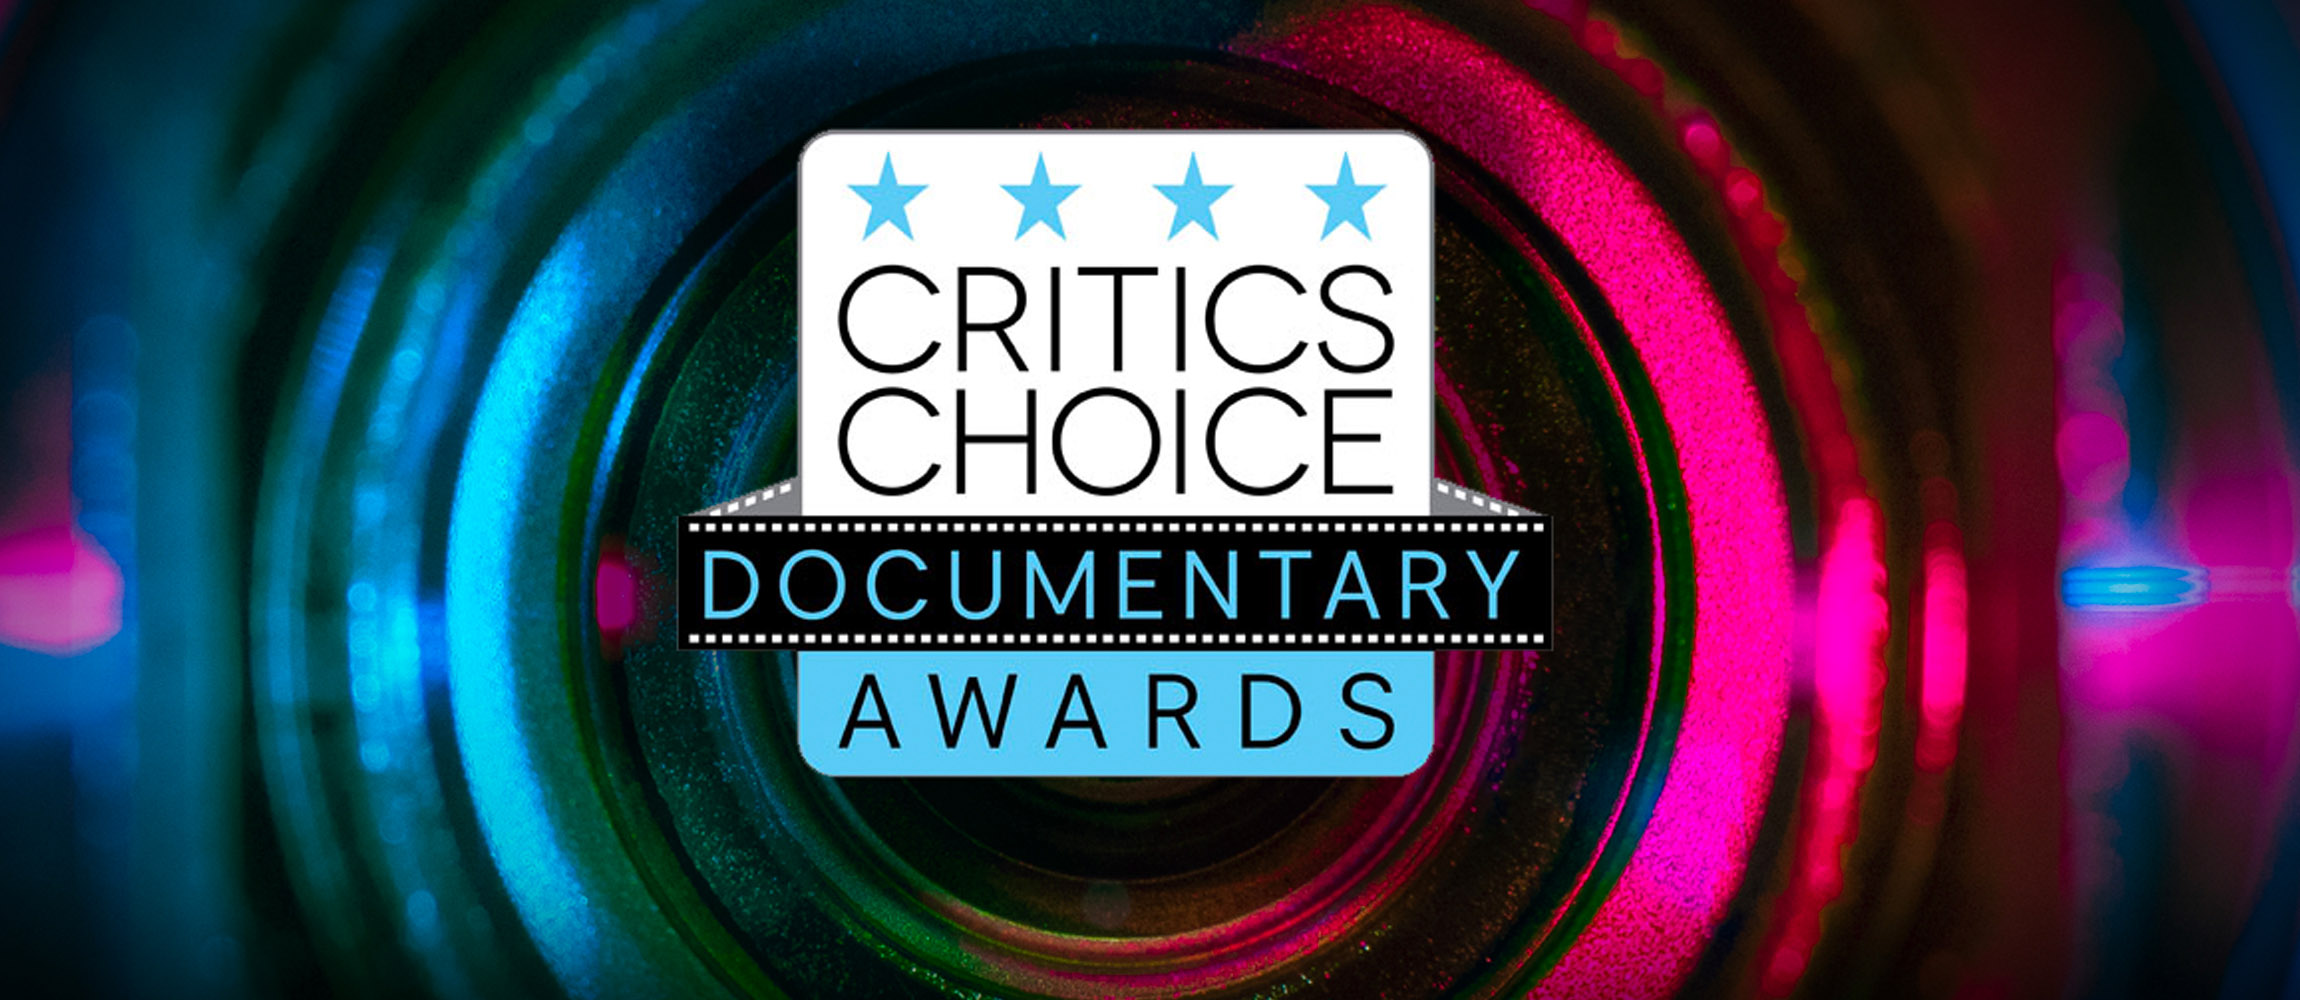 Critics Choice Documentary Awards 2020 – Confira os indicados